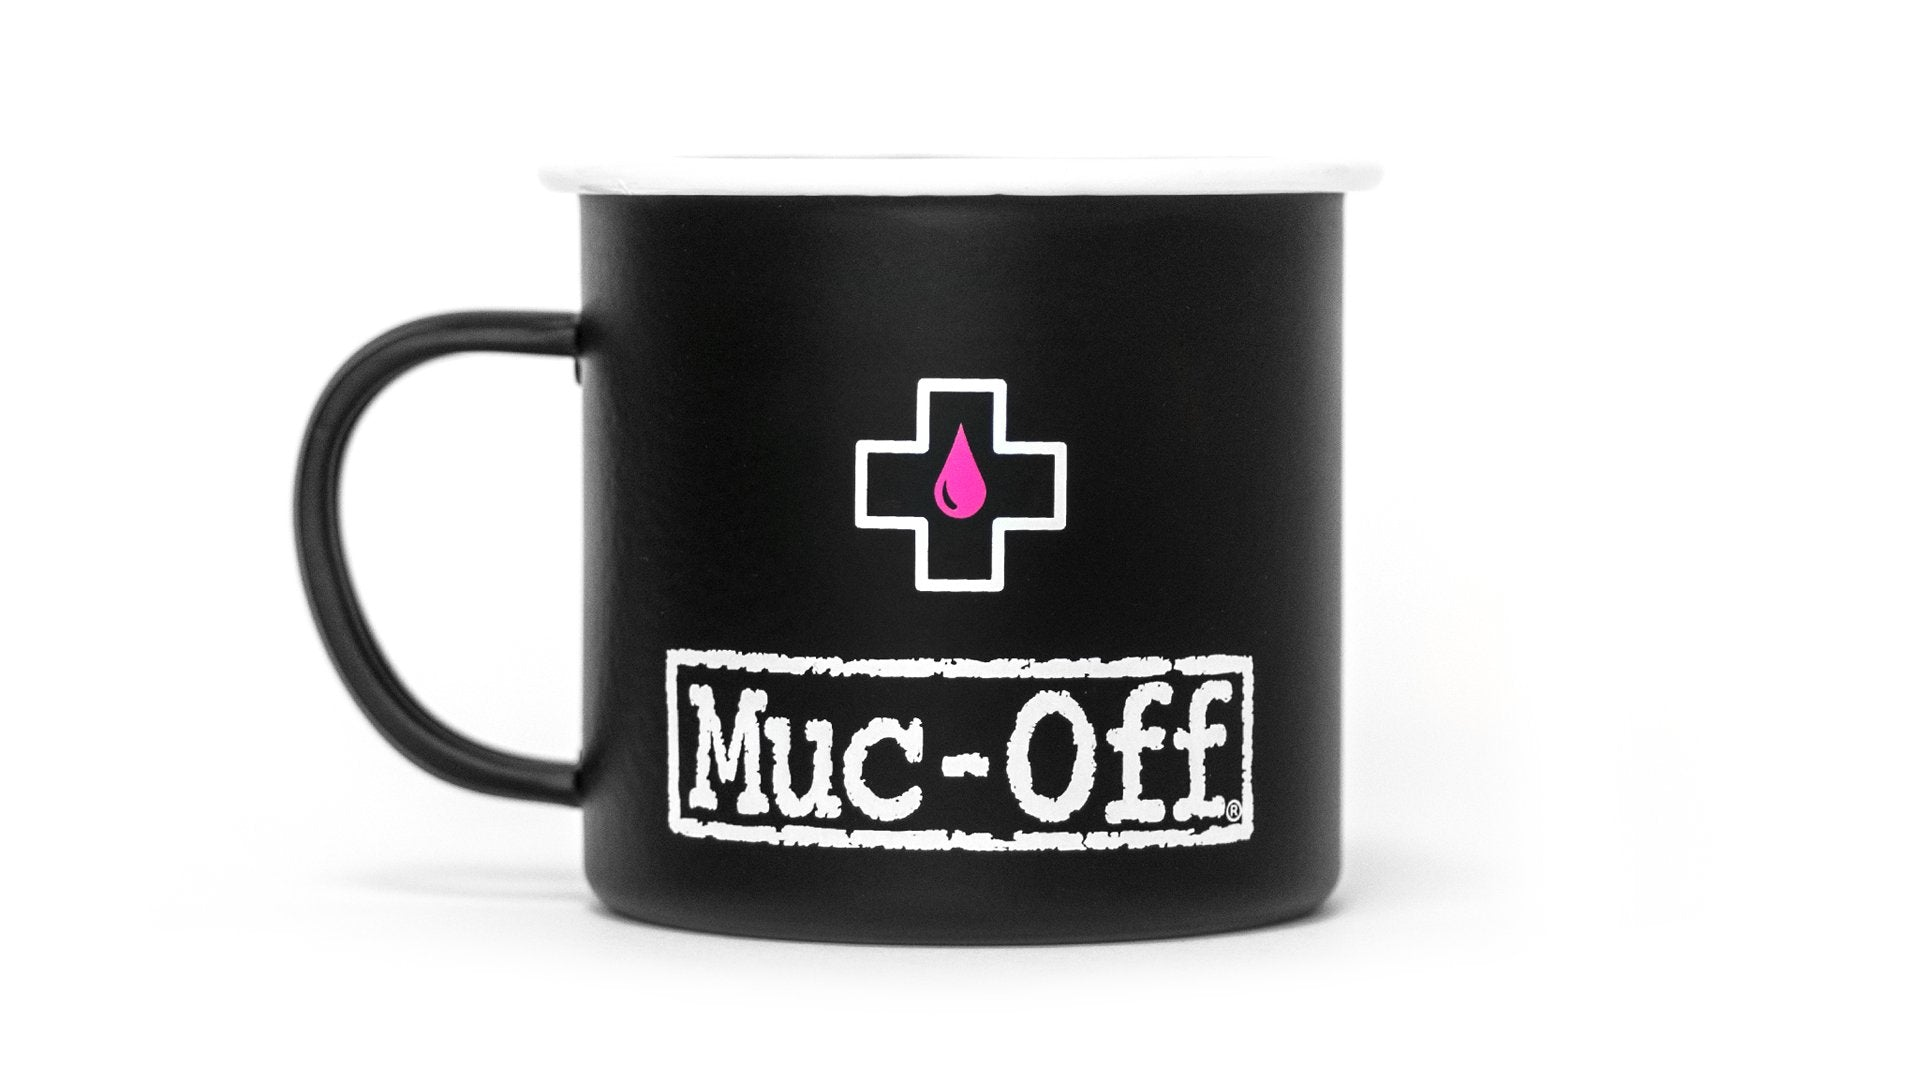 The Mechanics Mug - Muc-Off